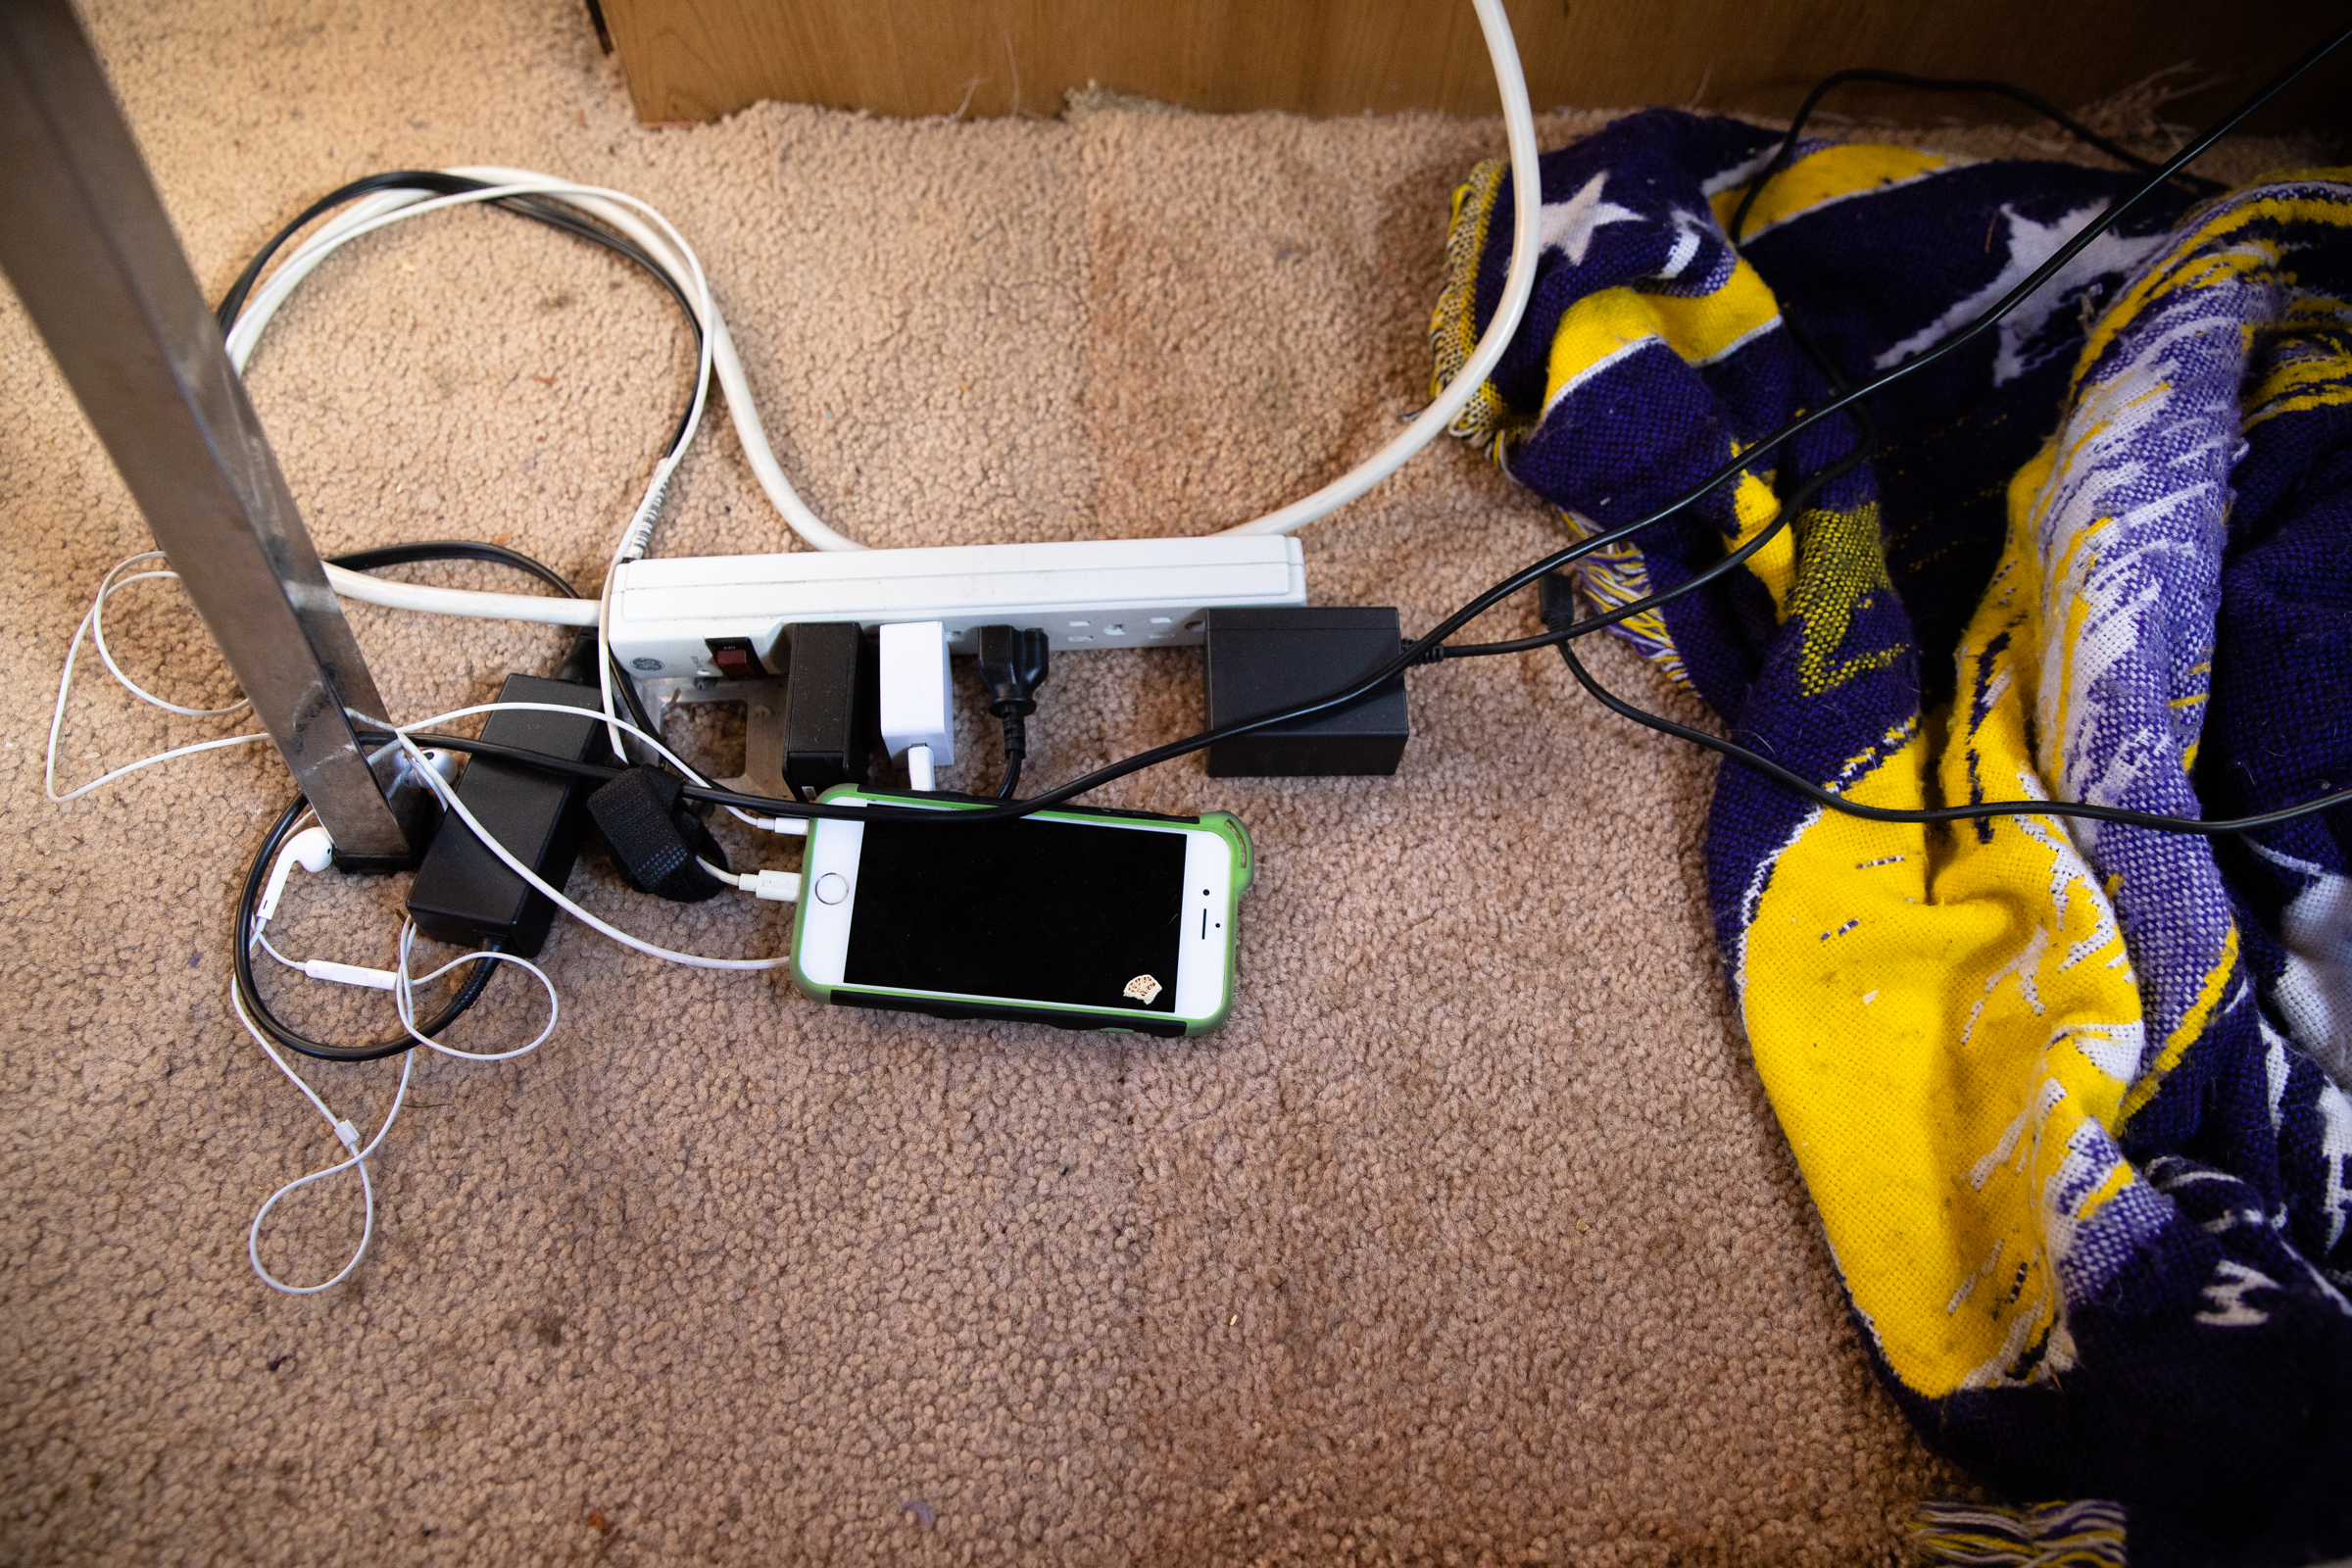 A phone charges in Scott Rodvold's motorhome along Continental Circle in Mountain View, California, on March 8.